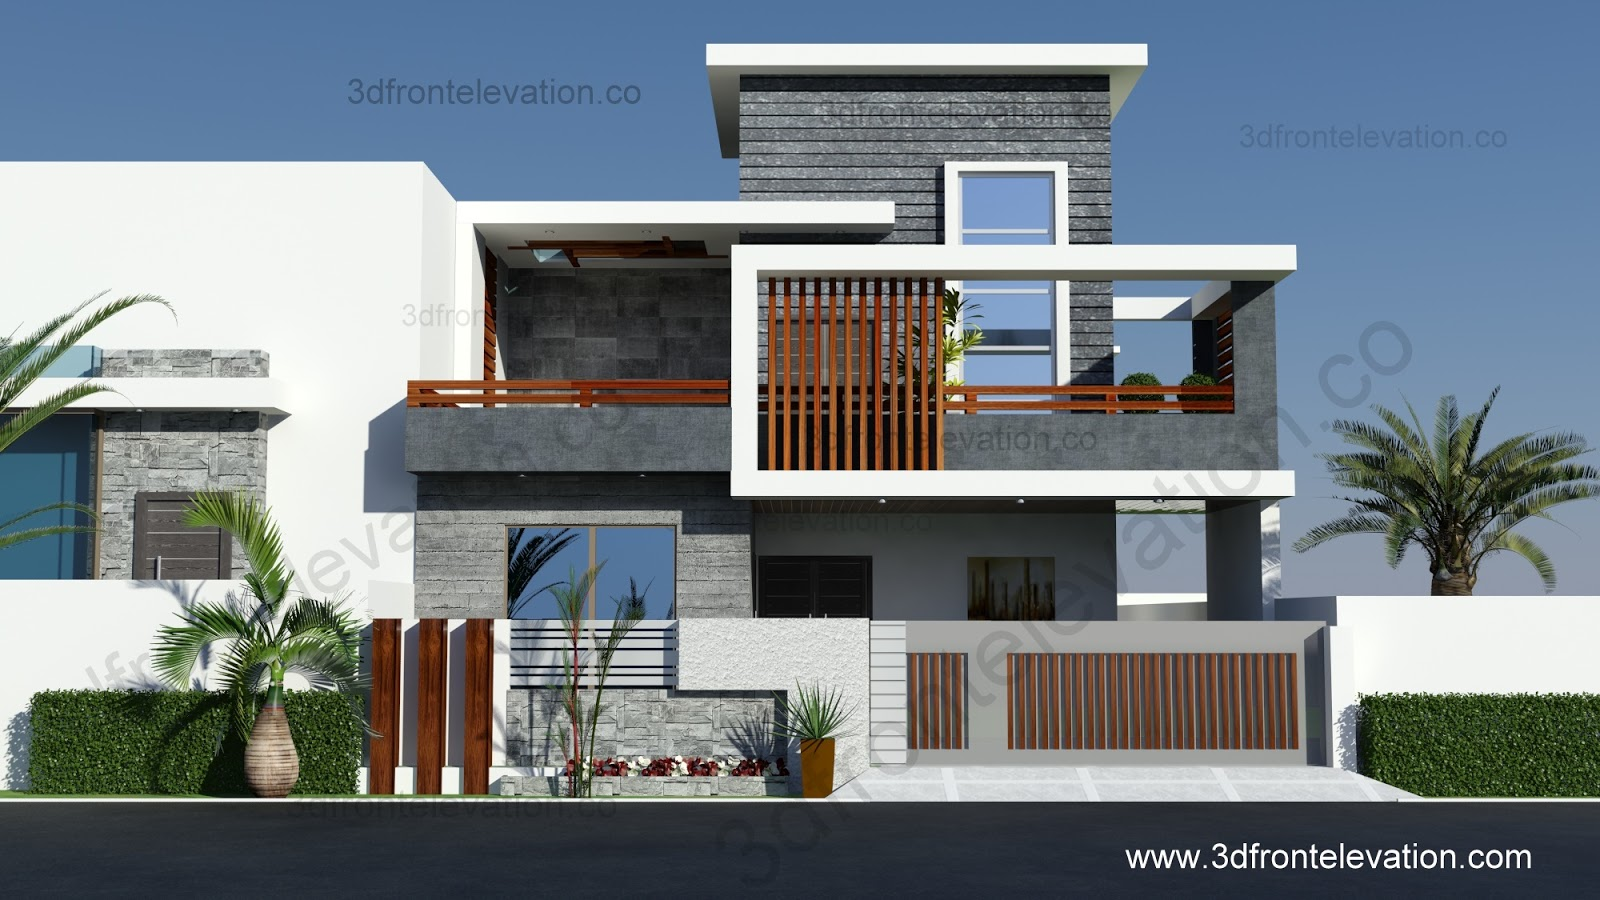 10 Marla Contemporary House Design 2016 3D